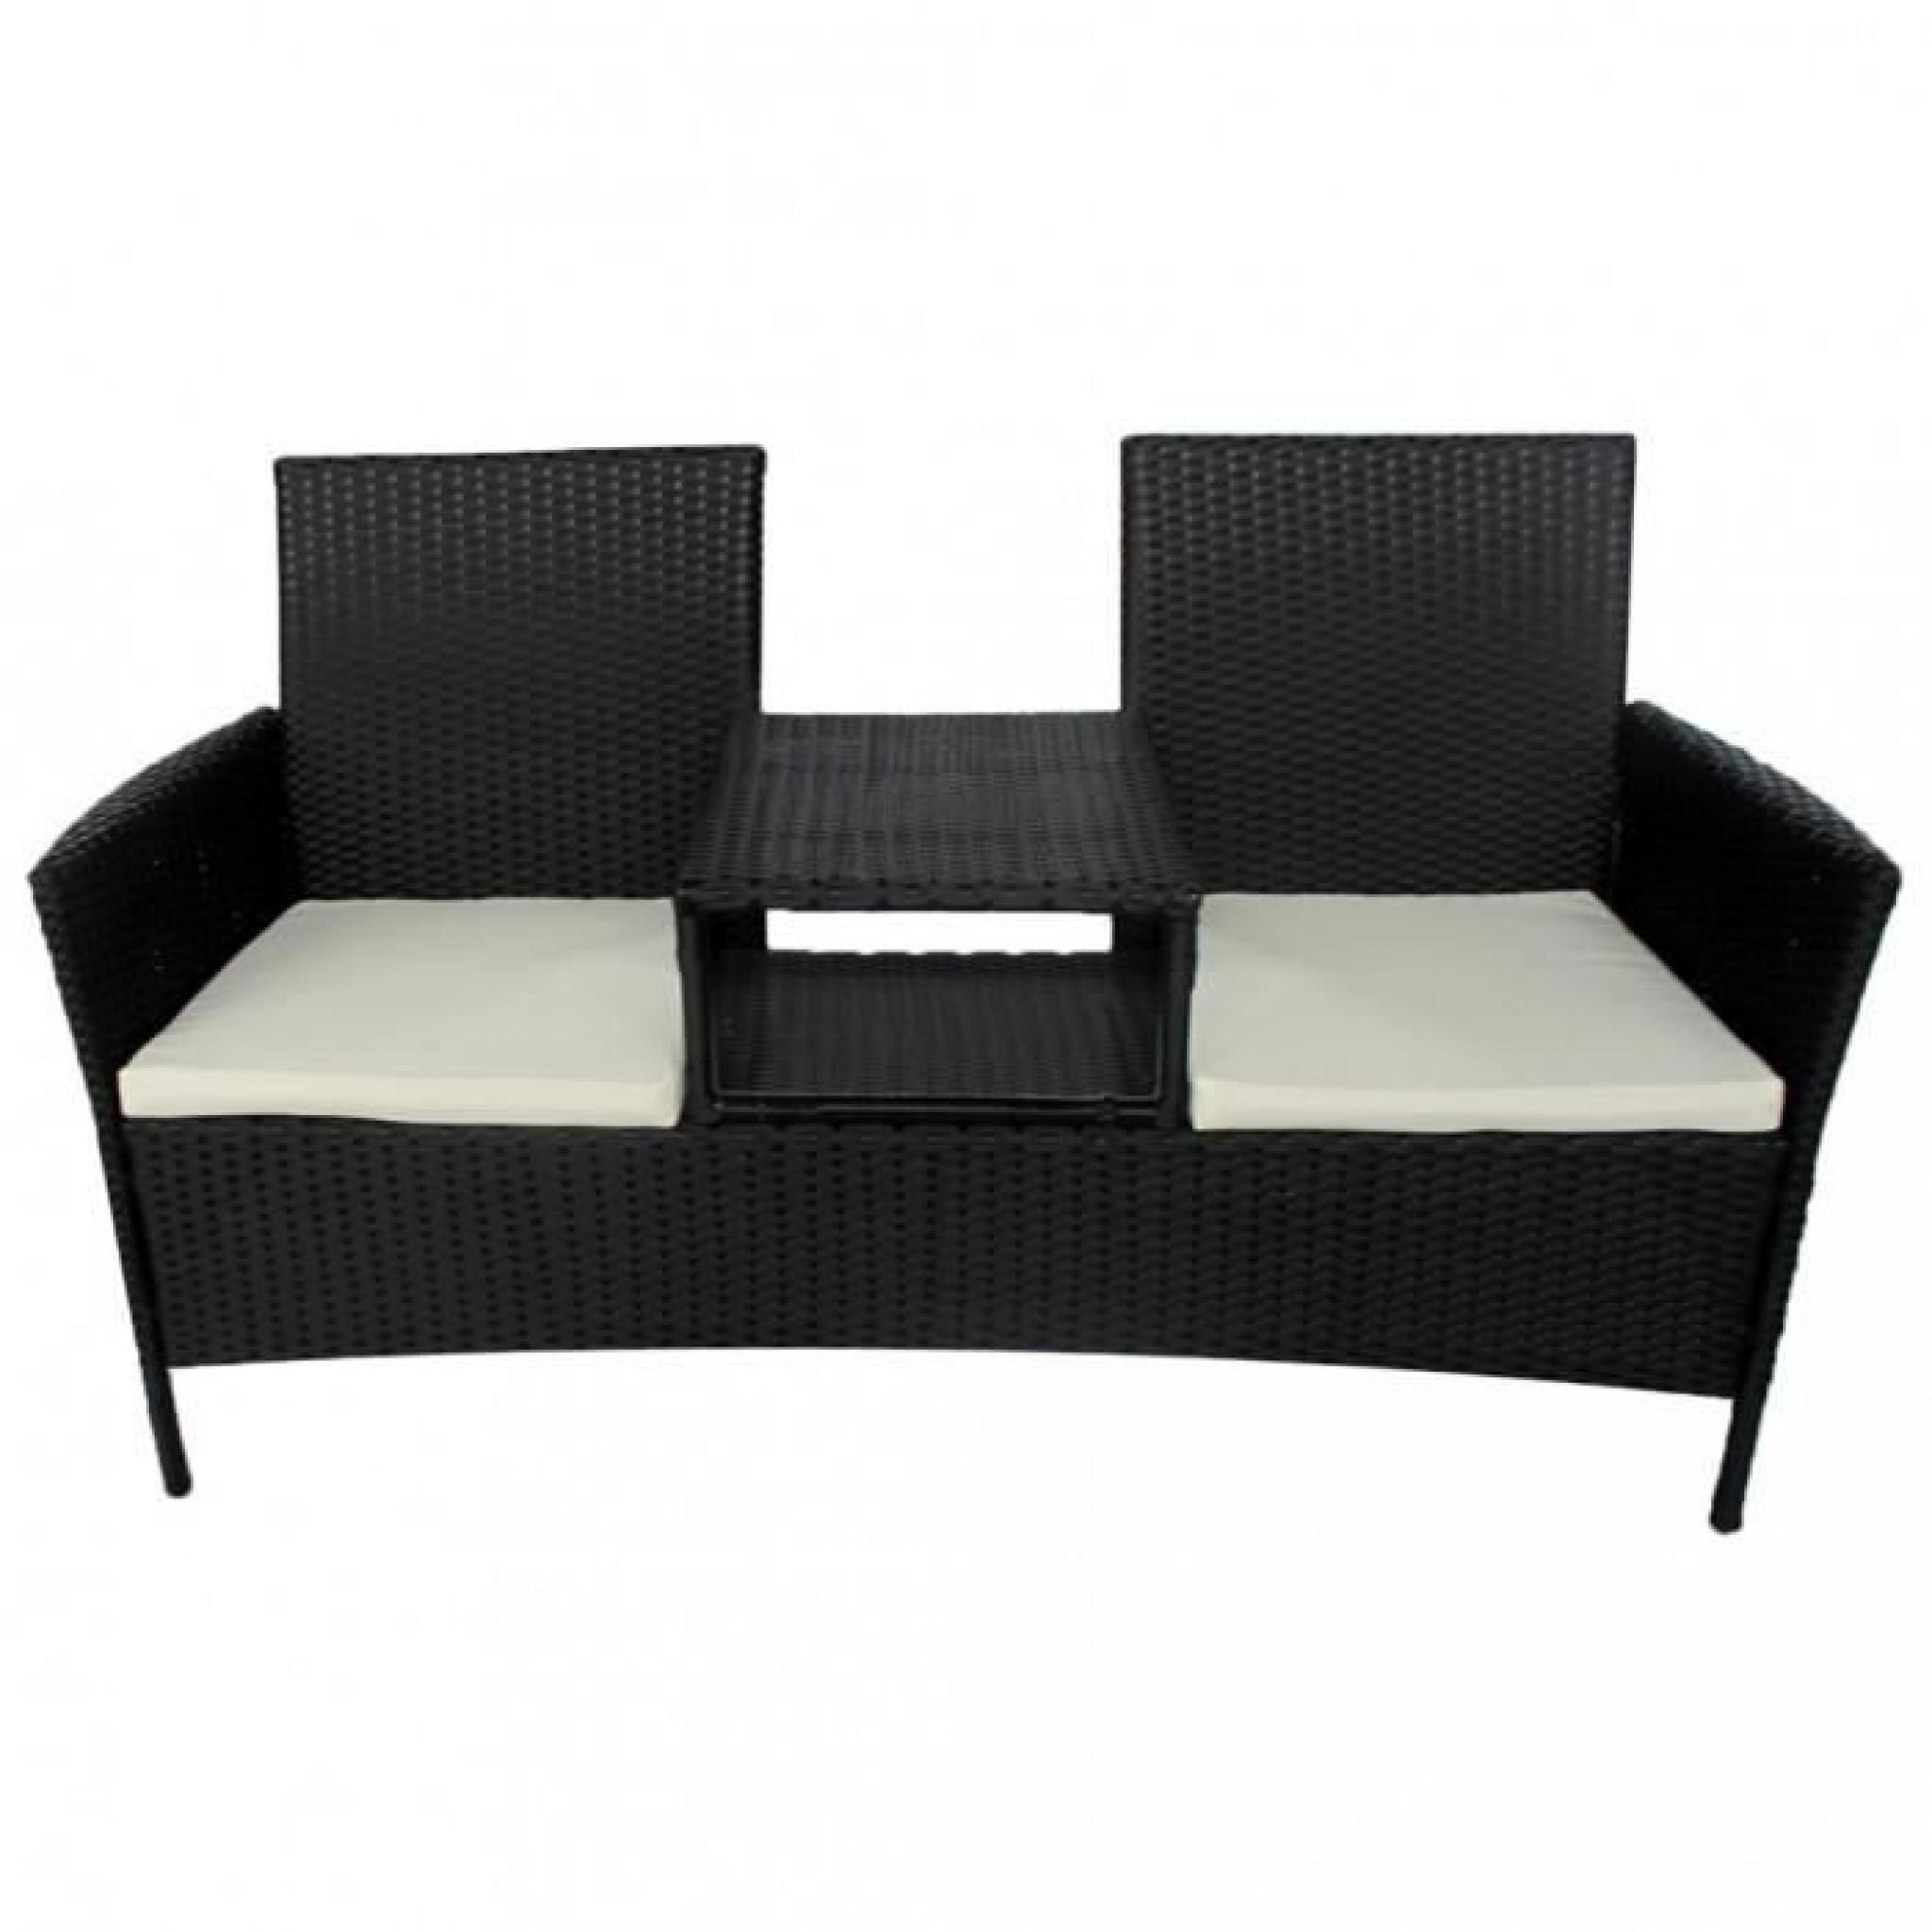 Ensembles de meubles d'exterieur Canape 2 places en poly rotin noir avec table a the